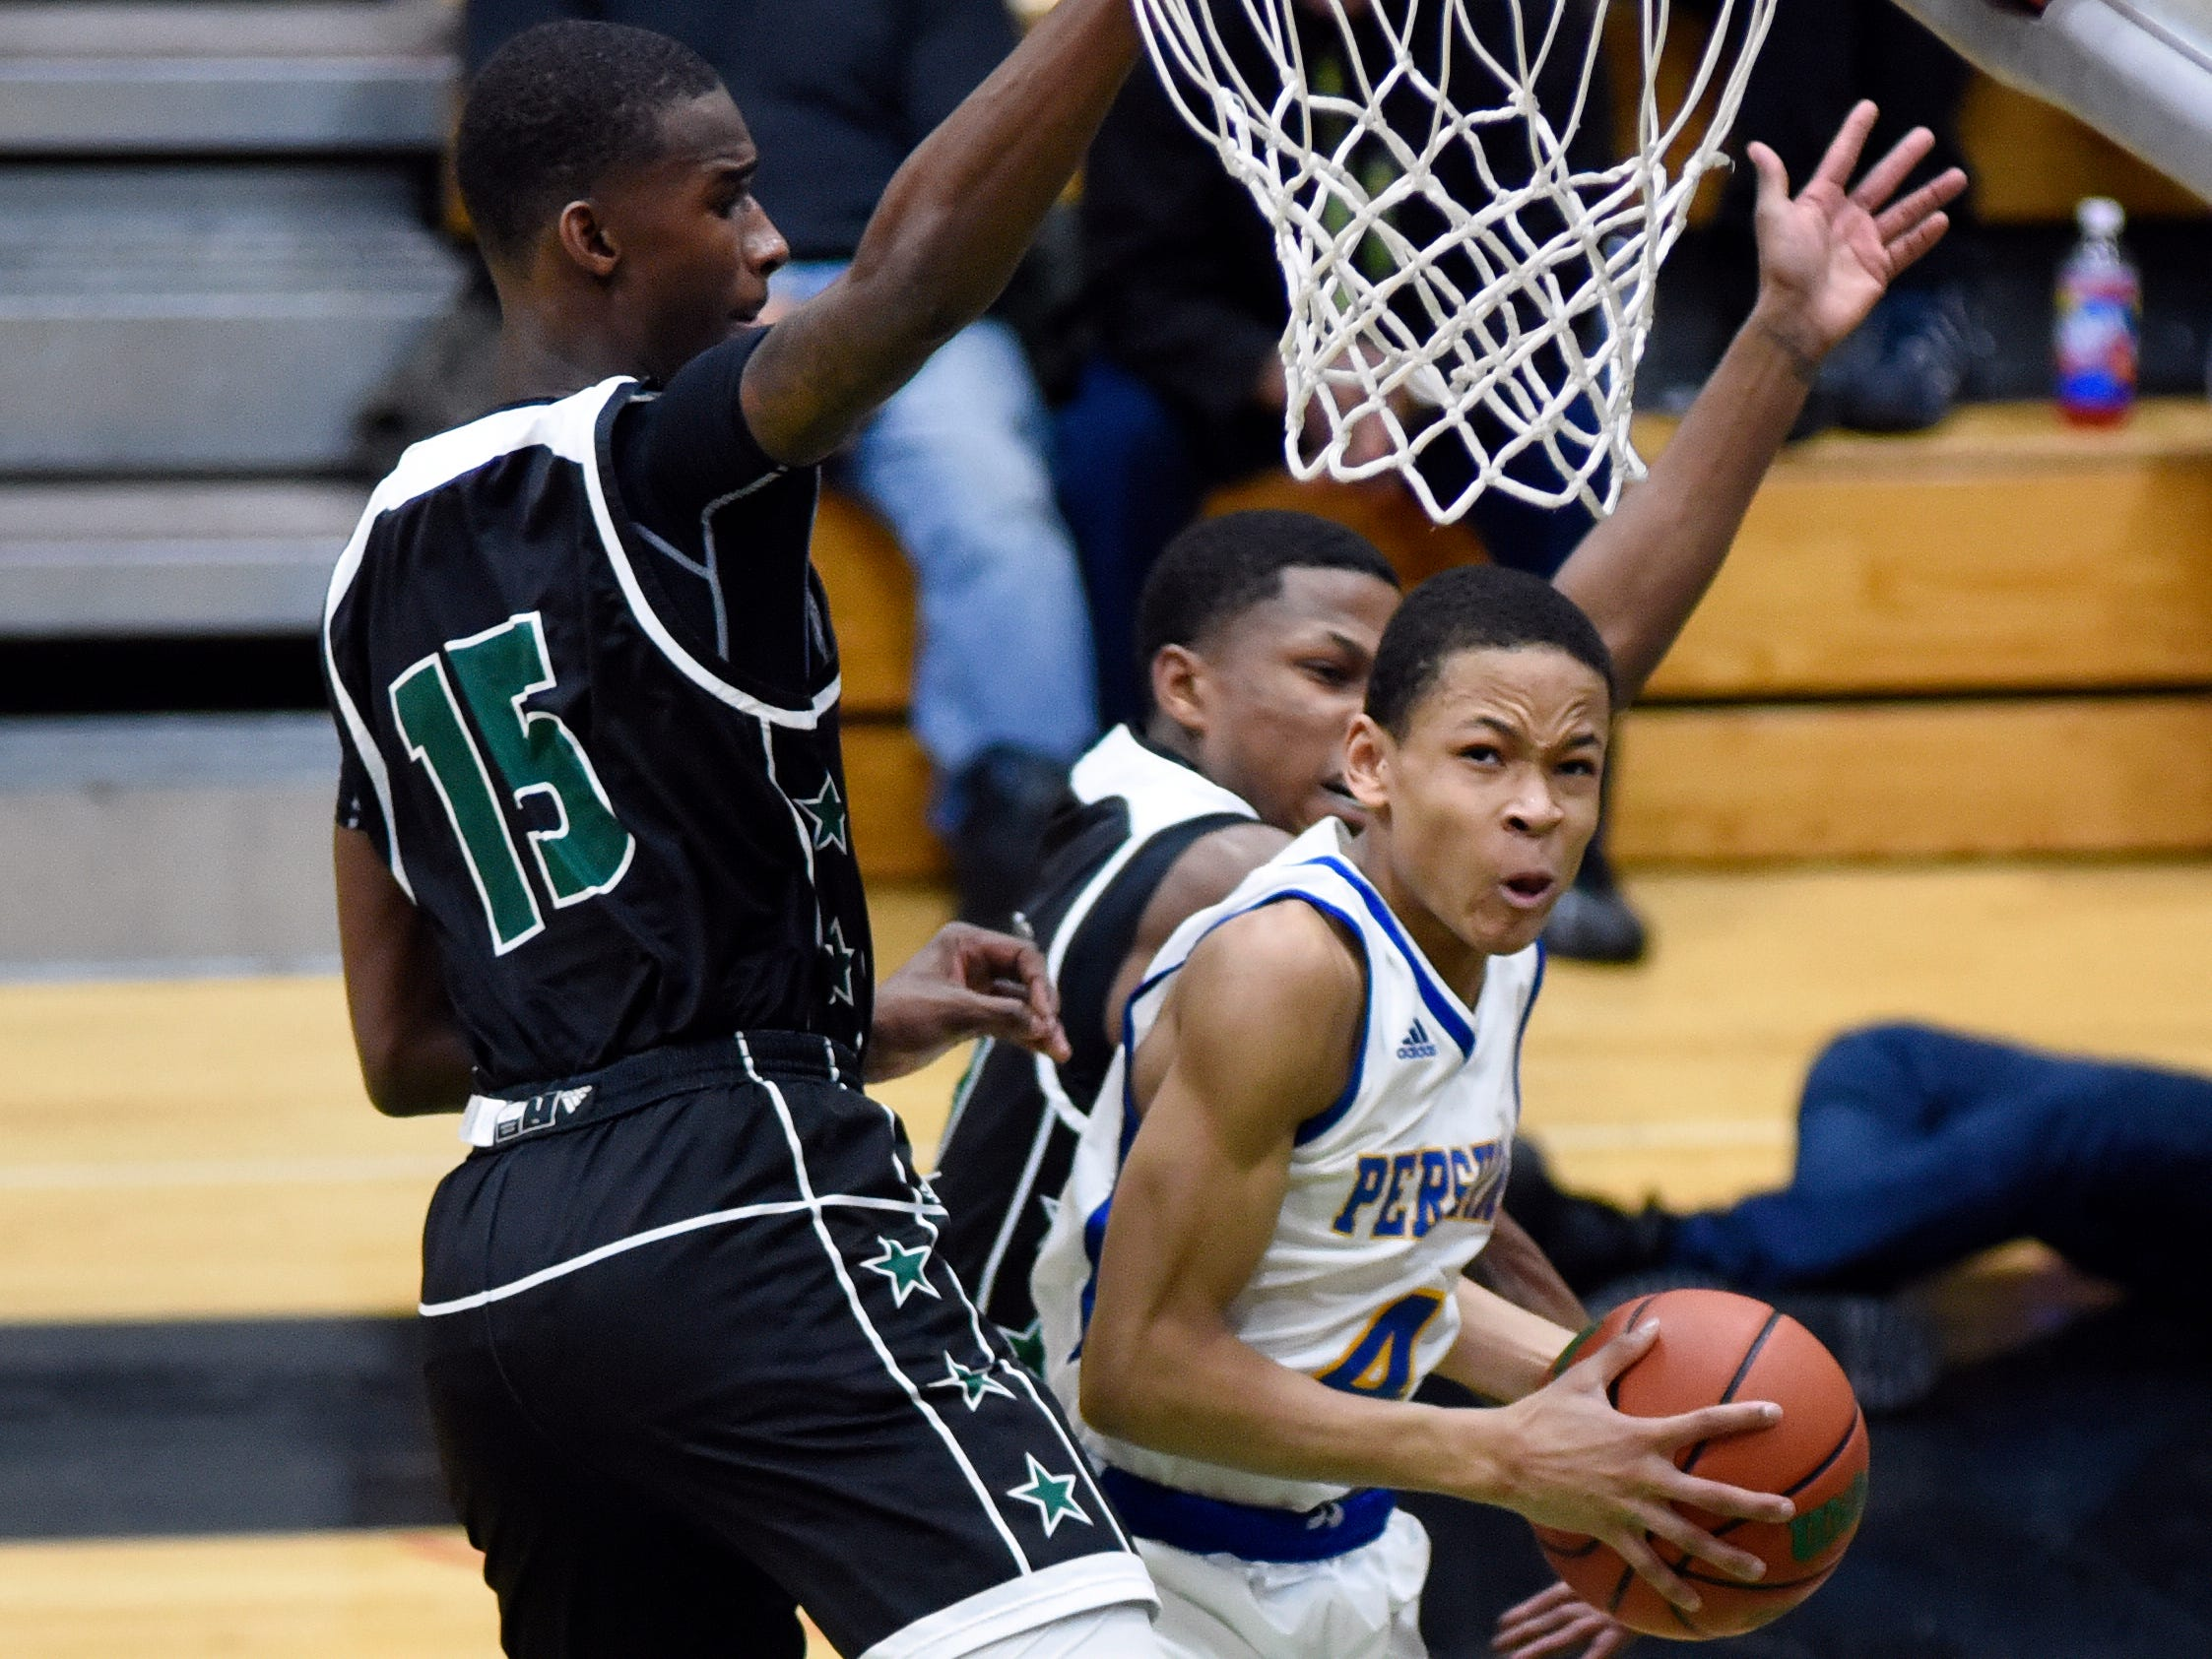 Detroit Pershing's Tharren Hill (4) goes in for a layup as his lane is blocked by Cass Tech's Joshua Harris (during the second quarter, Tuesday, Feb. 12, 2019, in a PSL boys basketball semifinal held at Cass Tech HS in Detroit.  (Jose Juarez/Special to Detroit News)